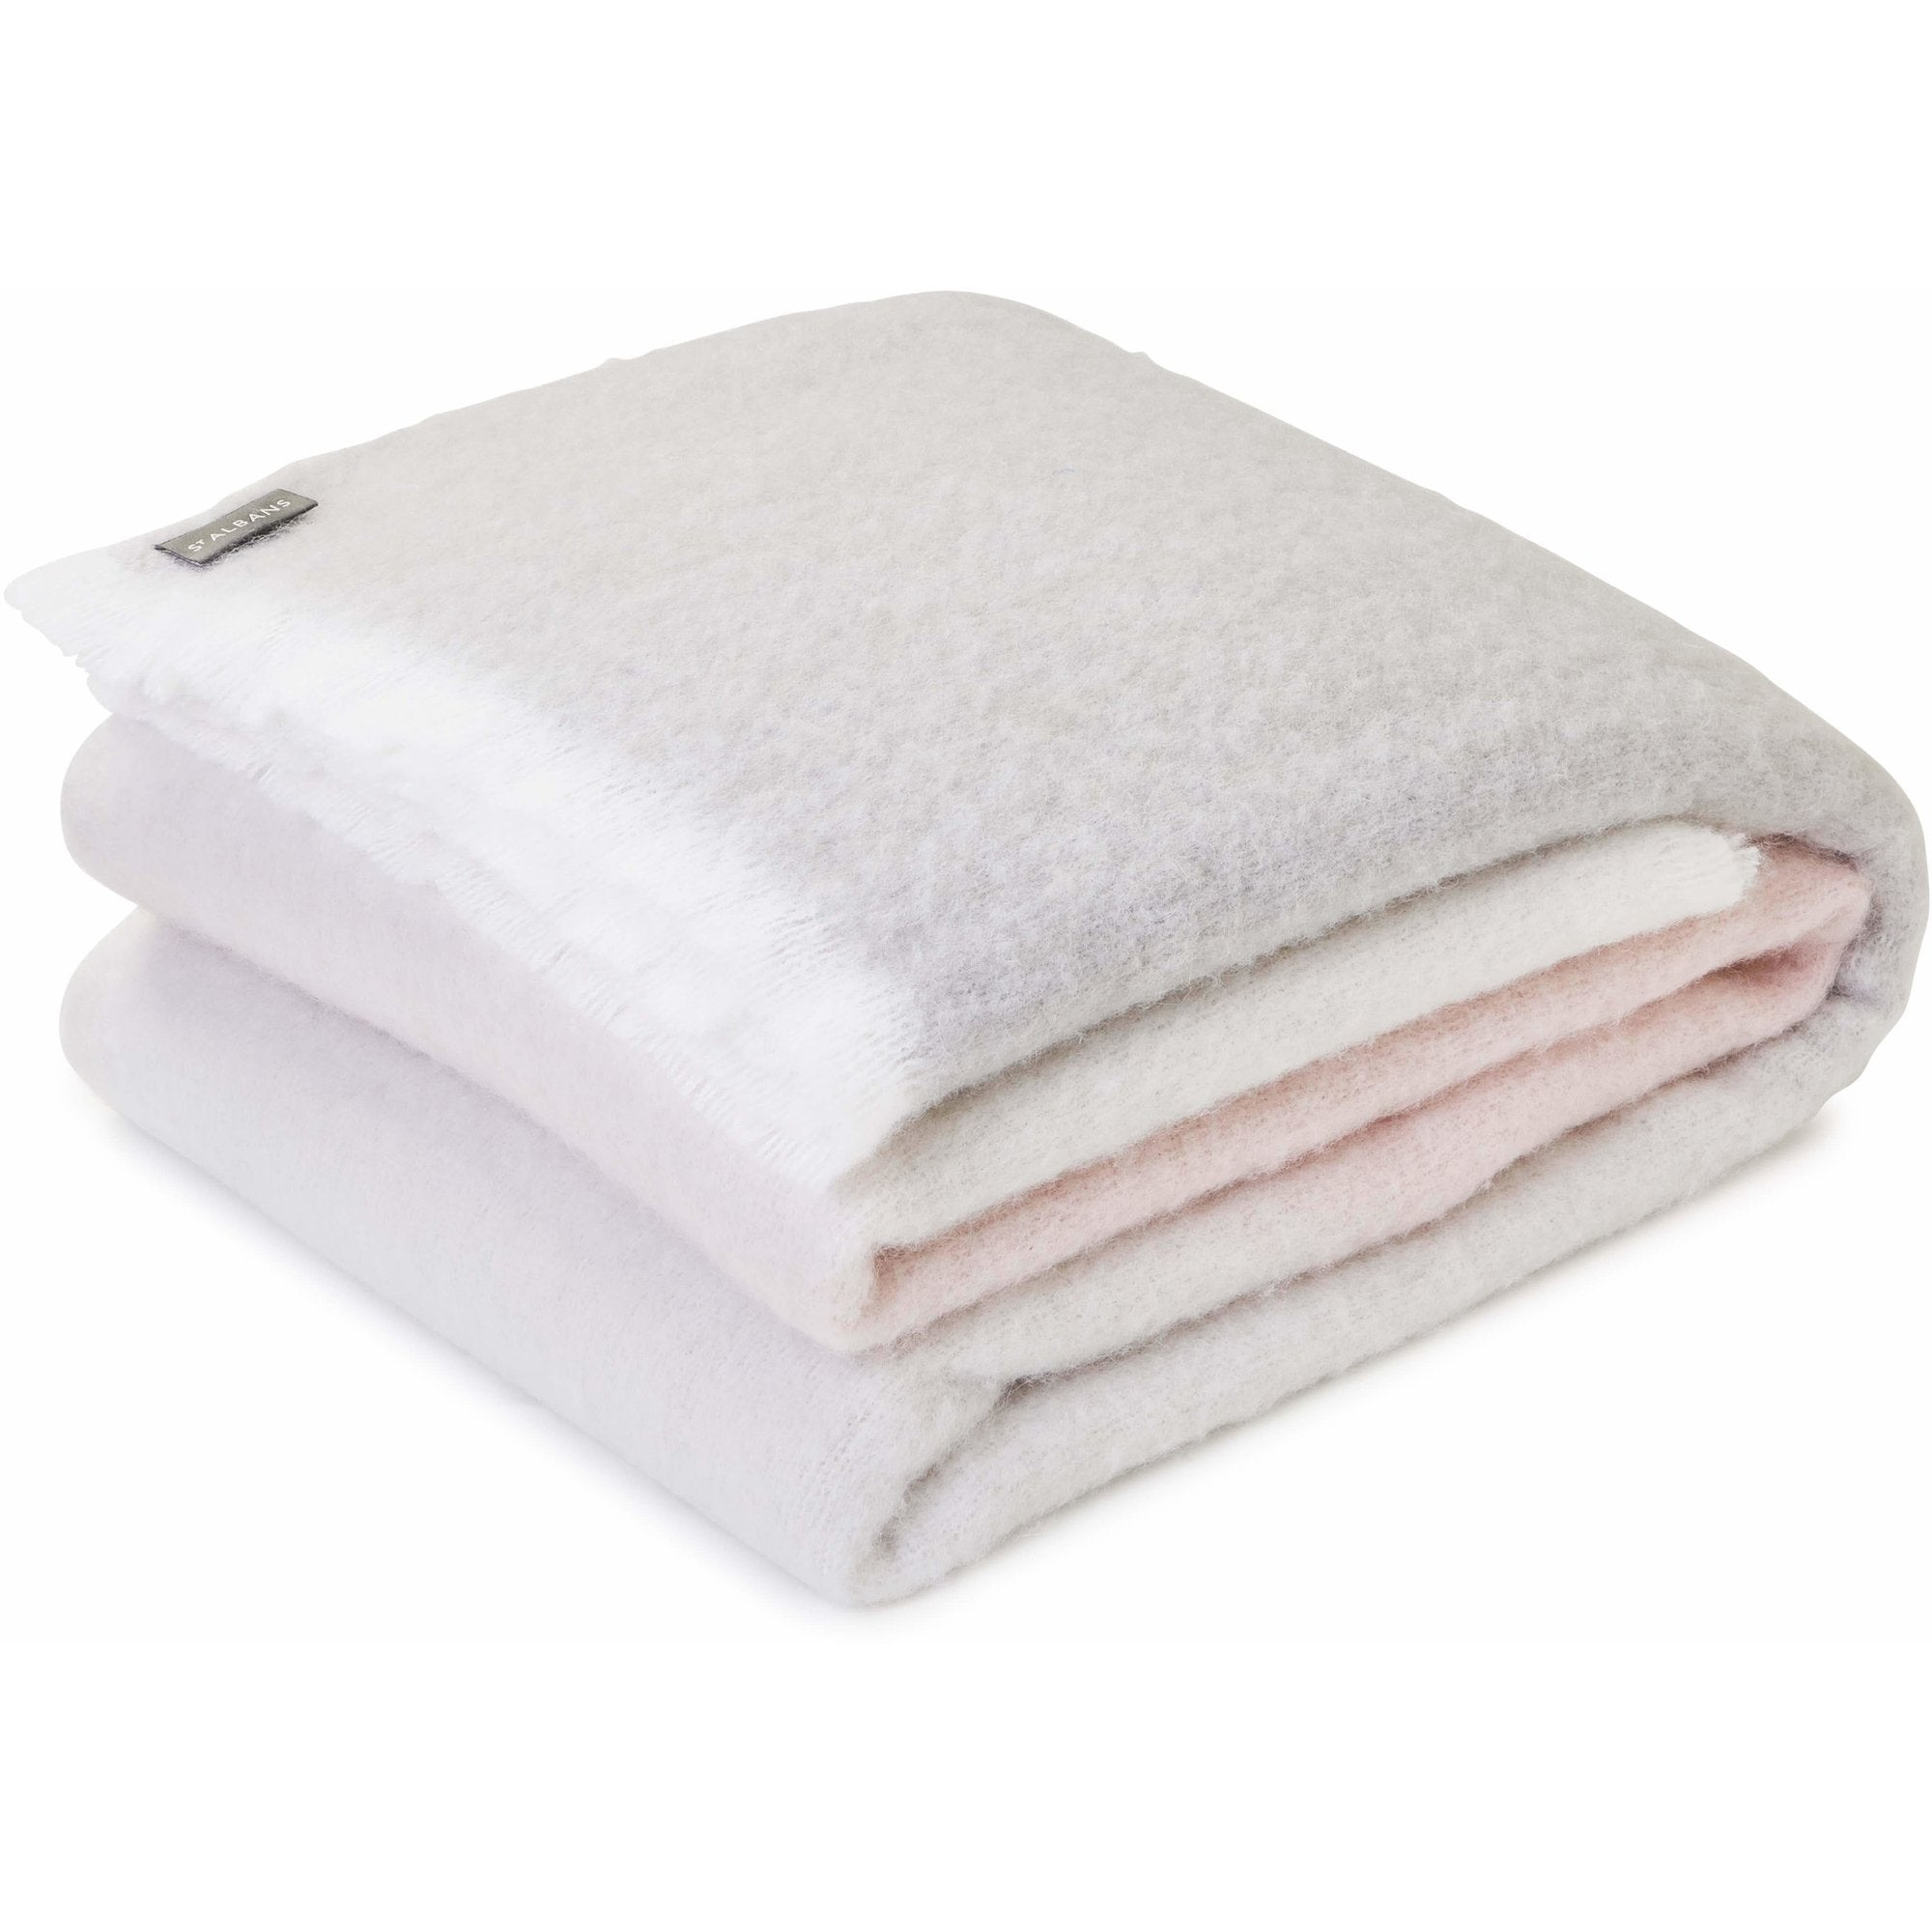 Alpaca Pinkstone St Albans Throw Blanket